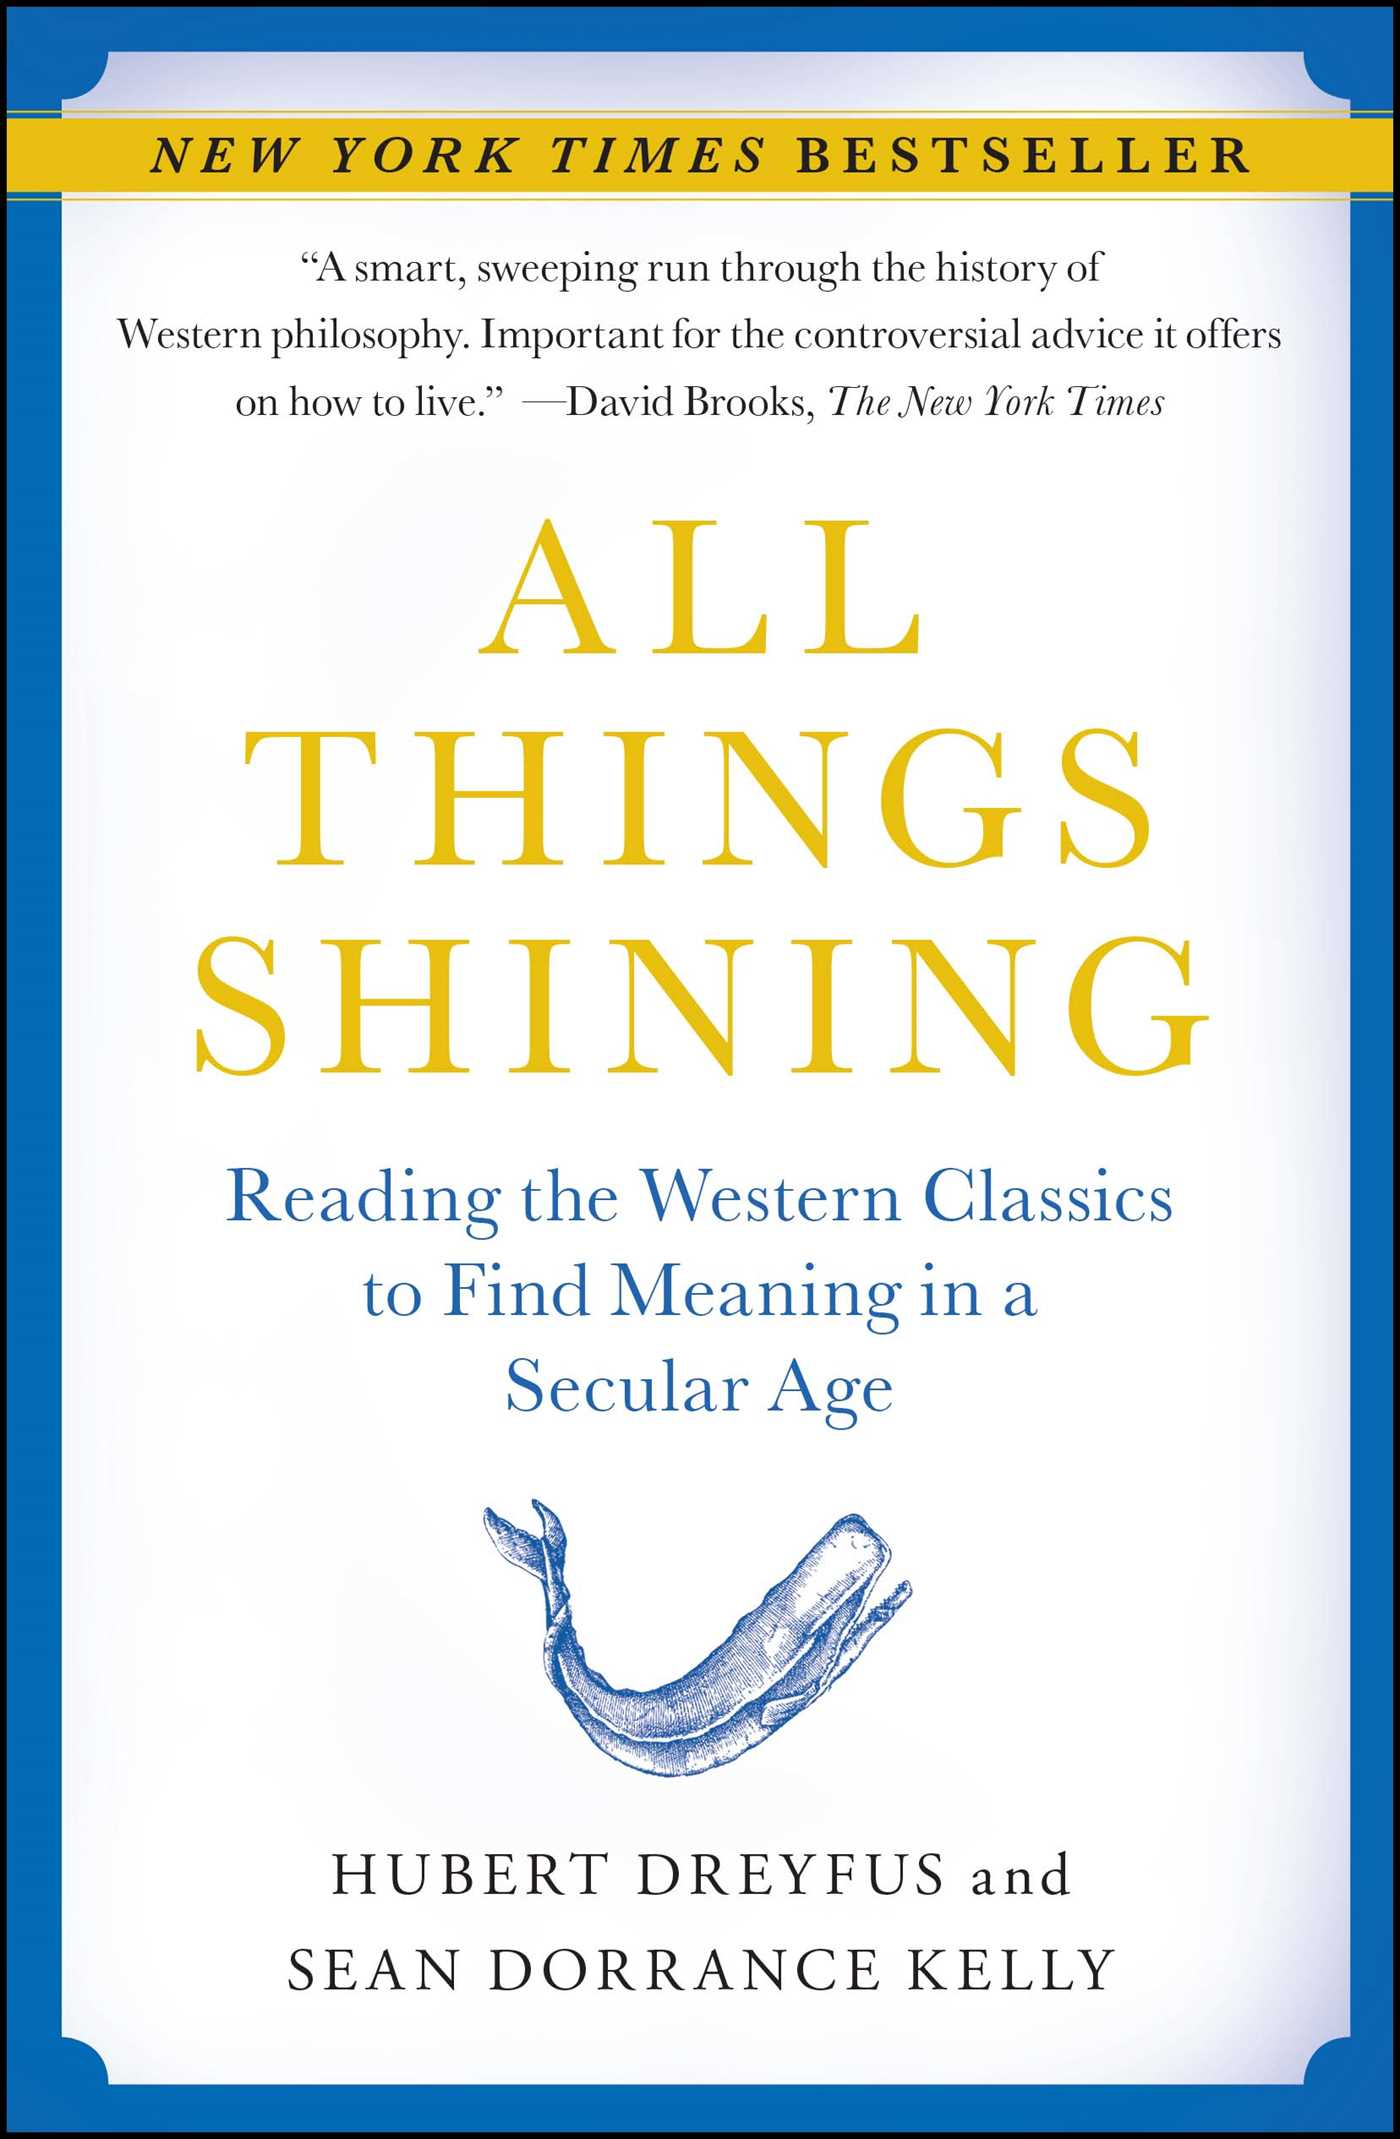 All-things-shining-9781416596165_hr